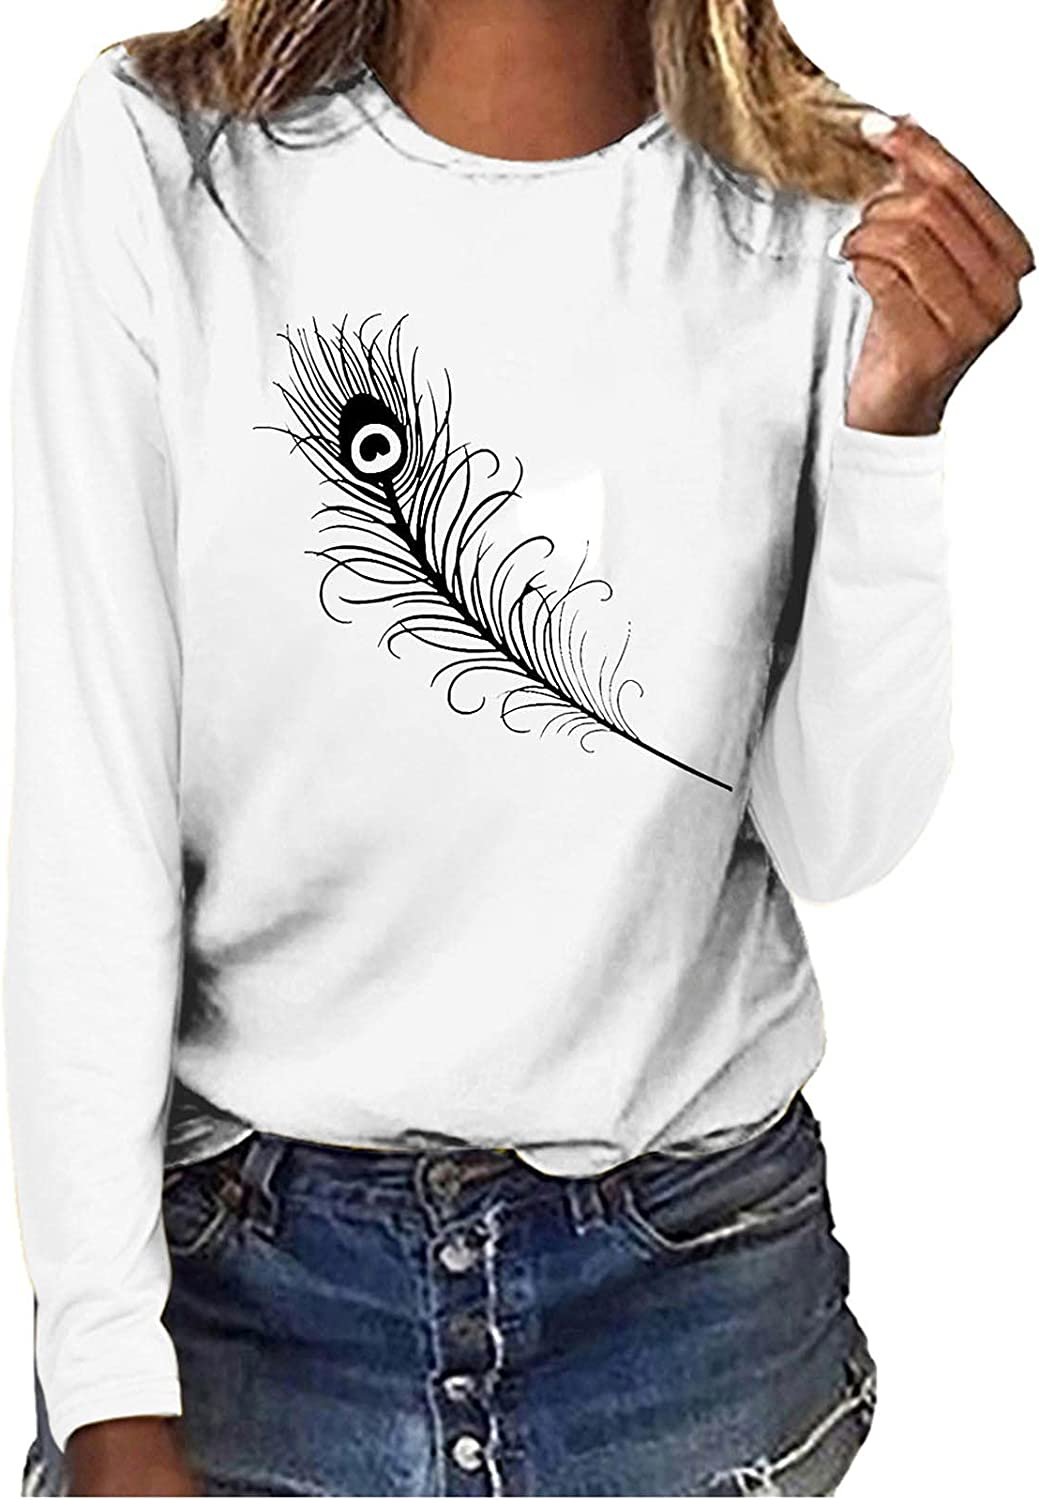 Women Long Sleeve Tops O-Neck Feather Printing Casual Loose Blouse Tops Comfortable Pullover Sweatshirt Tee